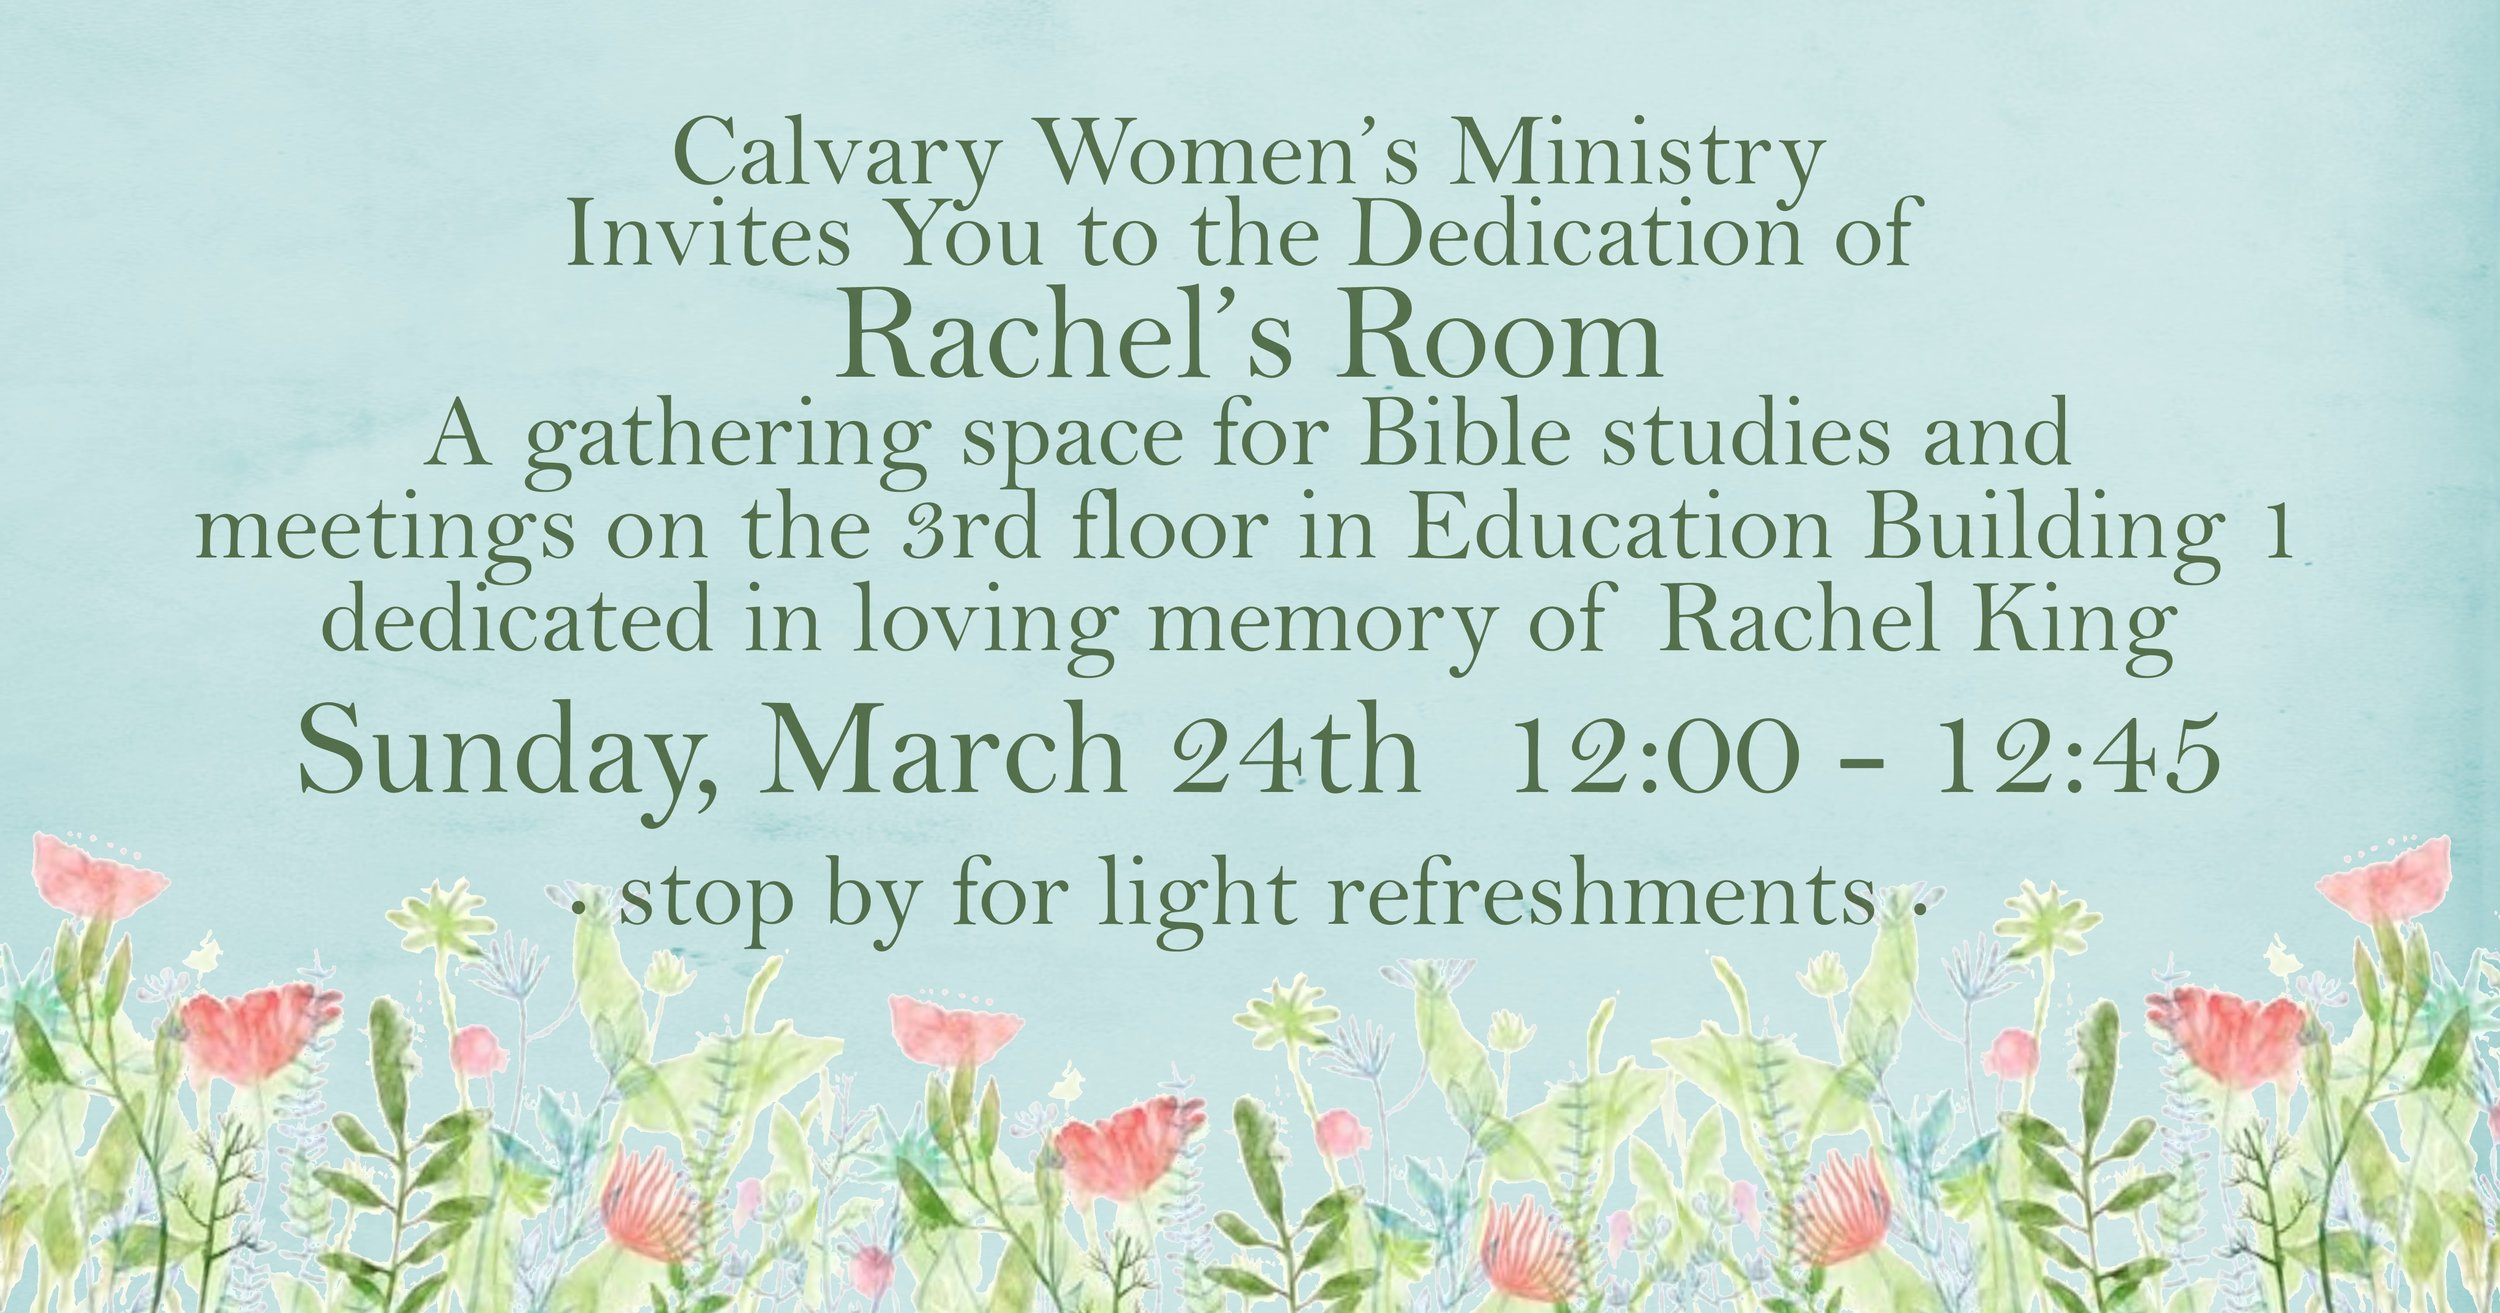 Rachel's Room Dedication Invitation fb 031919.jpg